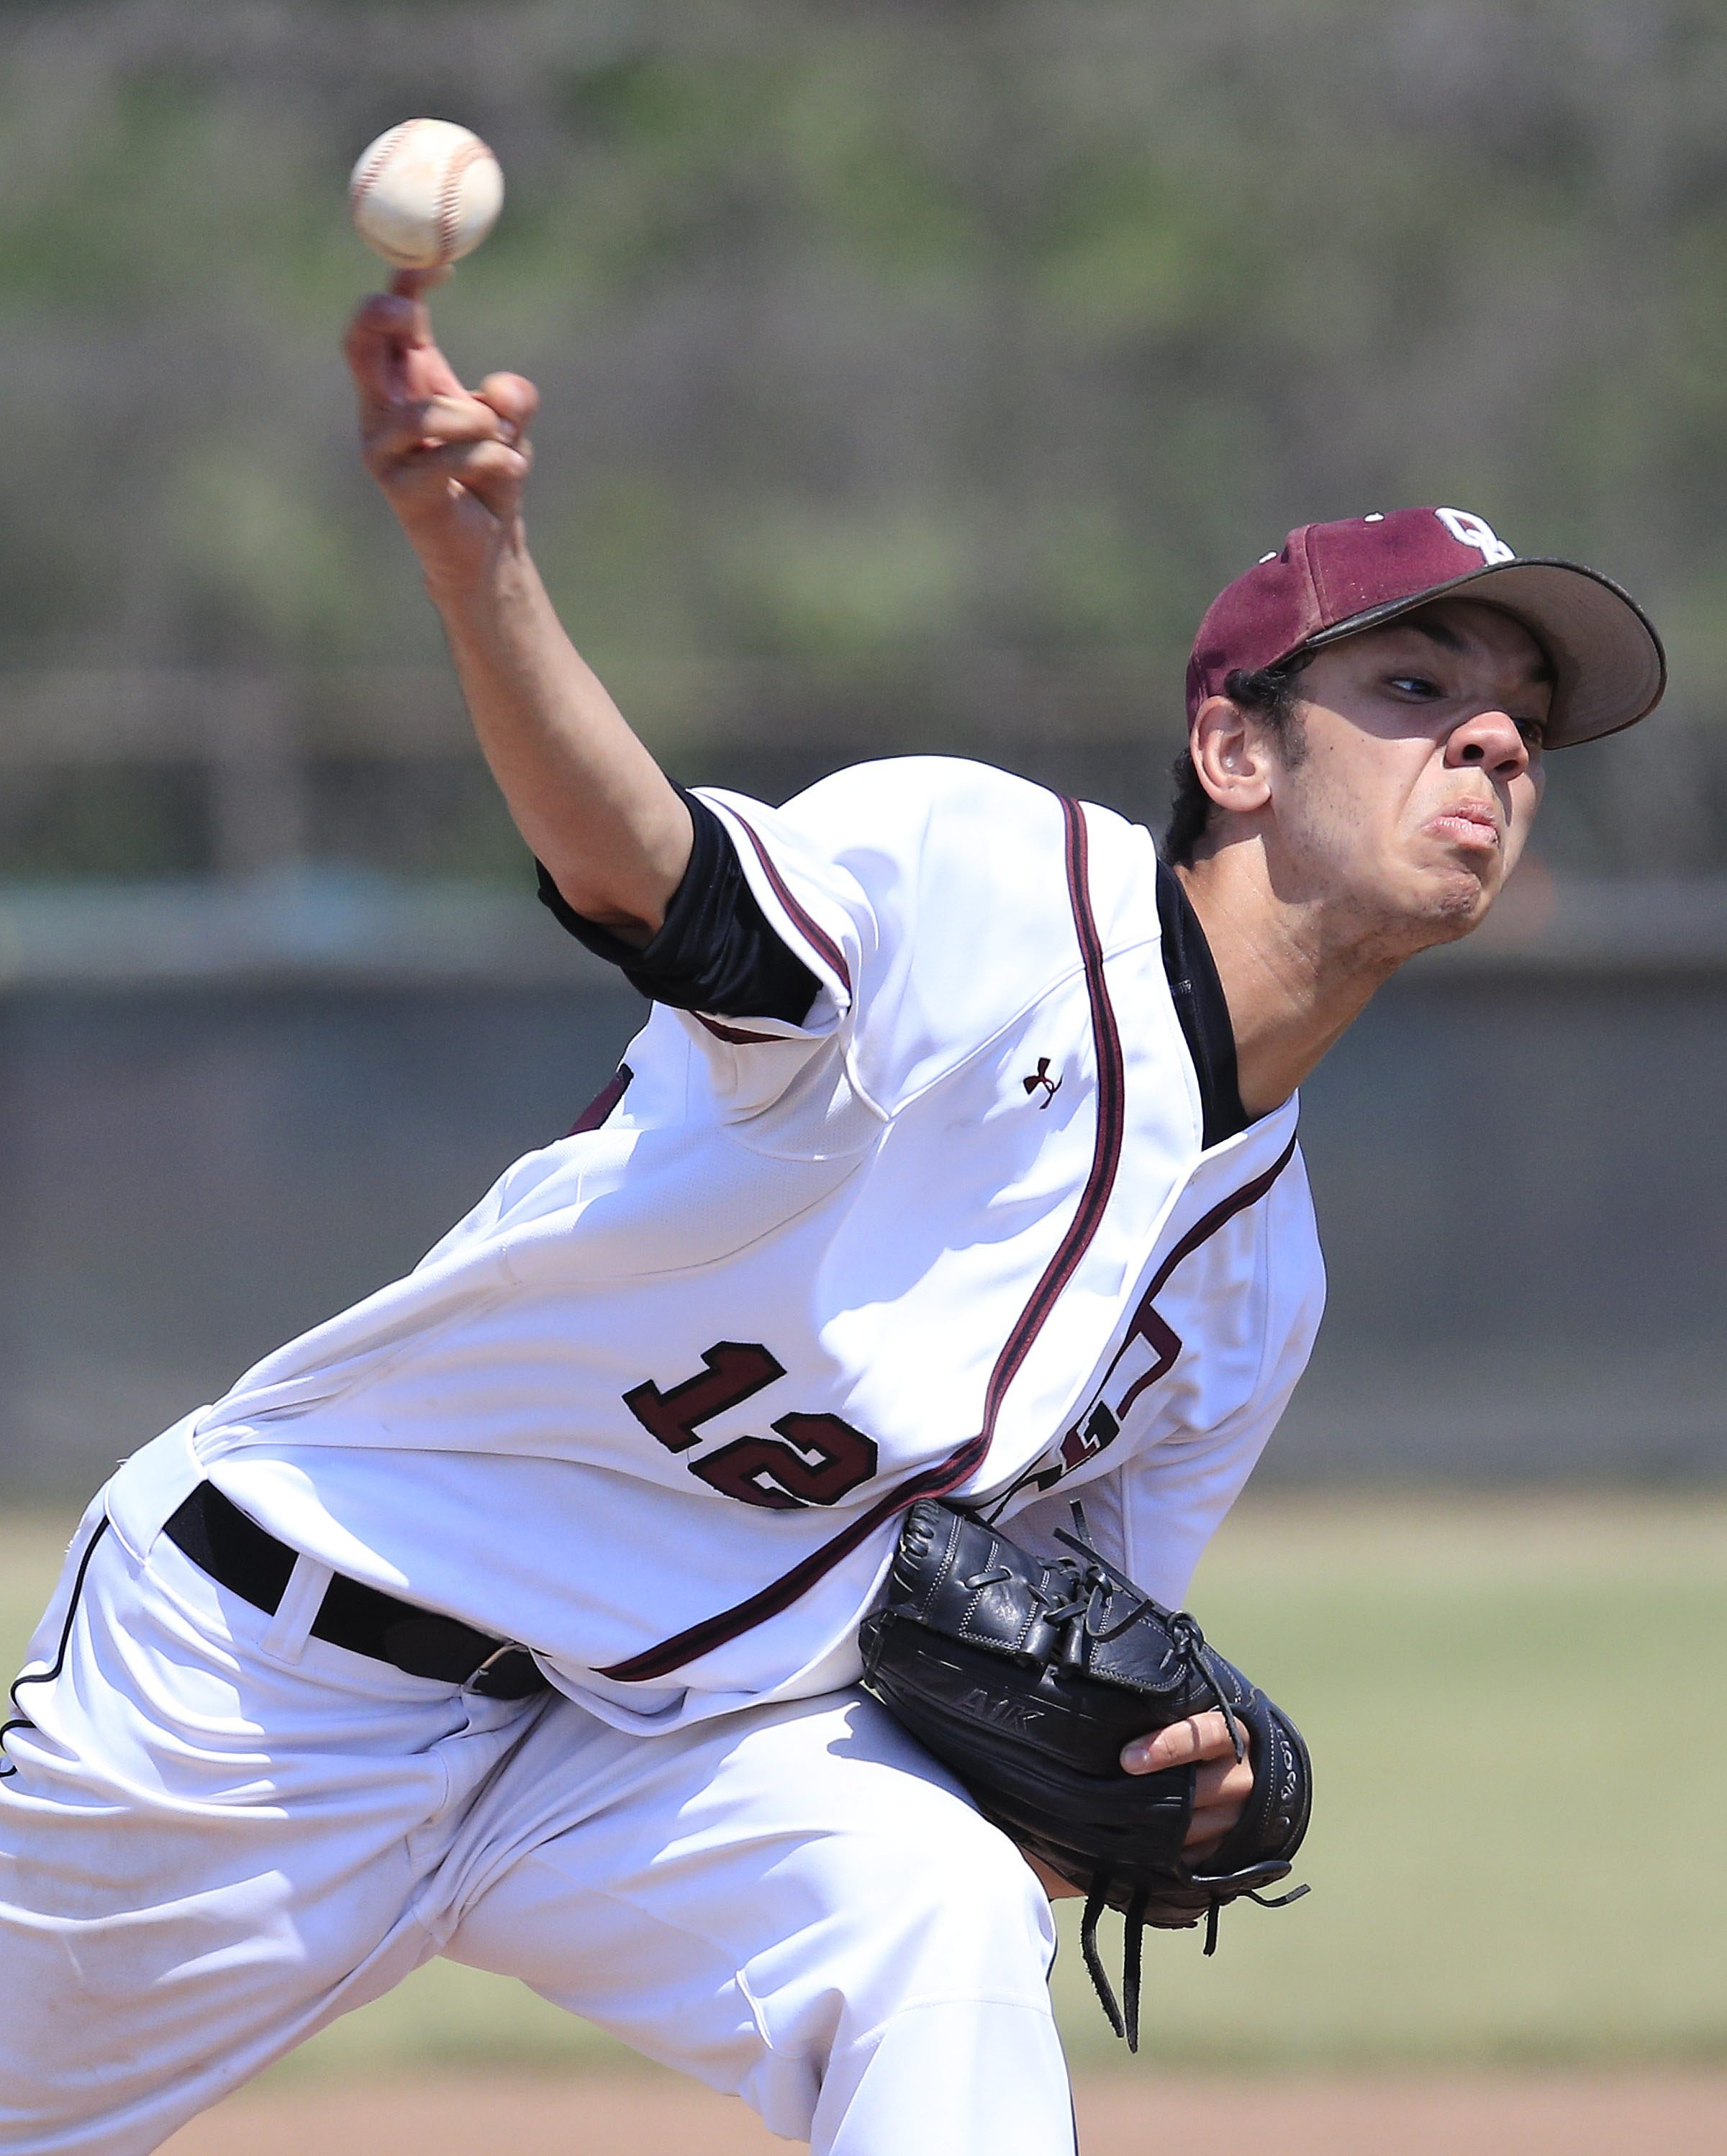 Orchard Park's Jacob Lewis pitches in relief against Niagara Falls during Section VI Class AA finals at Lewiston Porter high school  on Saturday, May 30, 2015..(Harry Scull Jr./Buffalo News)